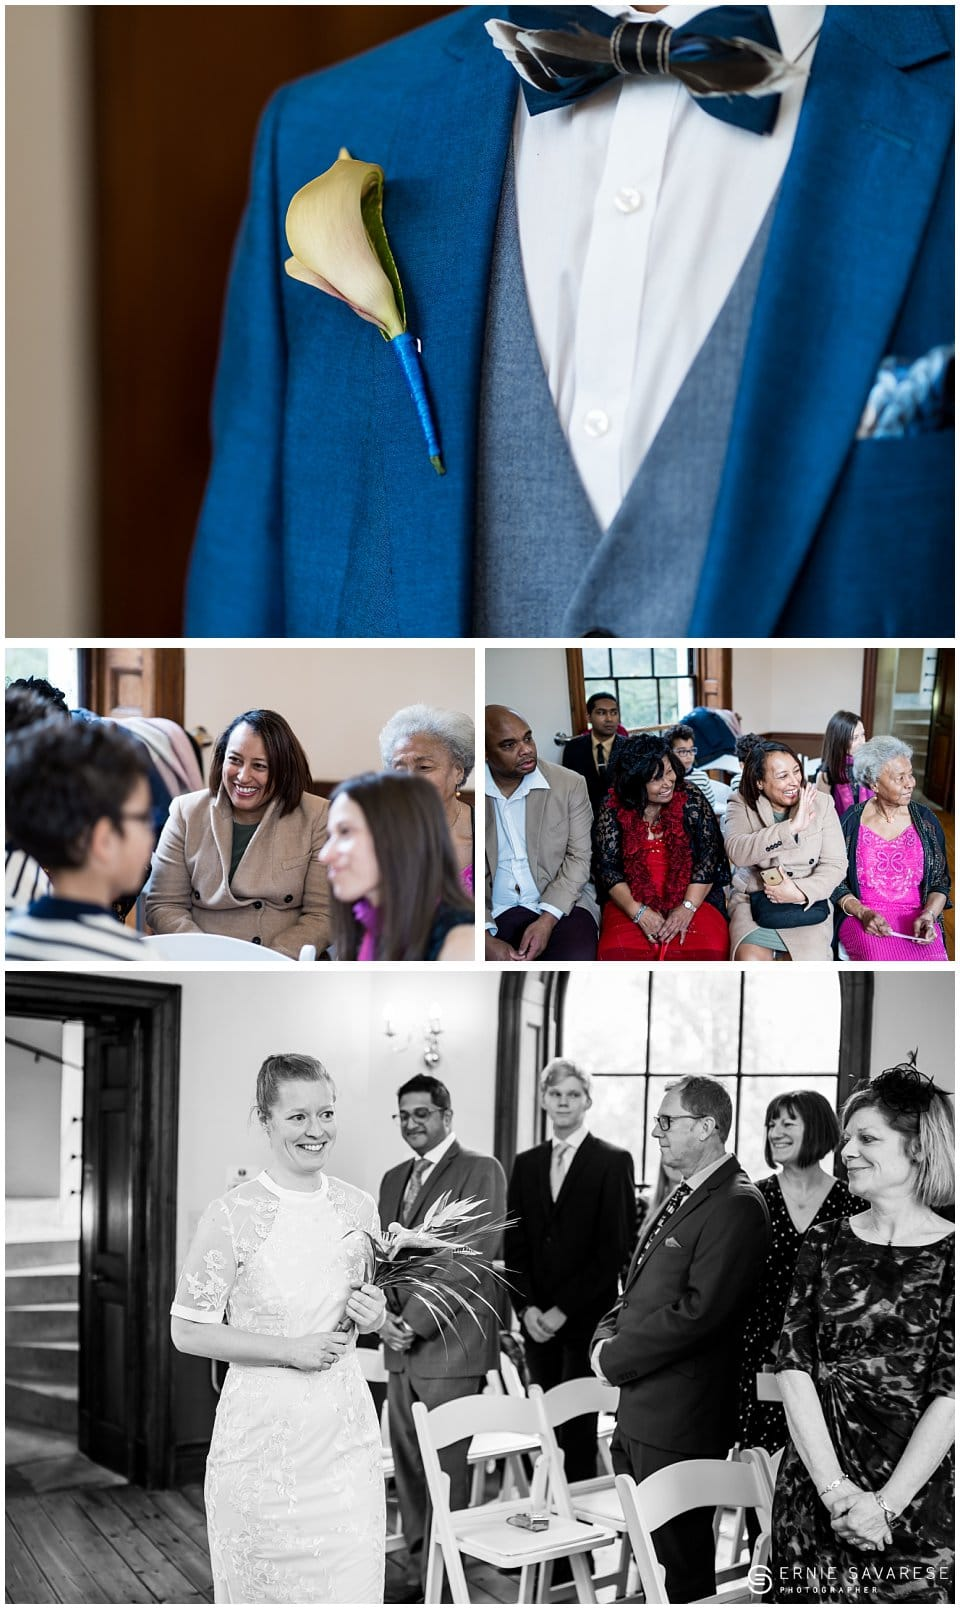 Wedding Photographer Greenwich Severndroog Castle 6